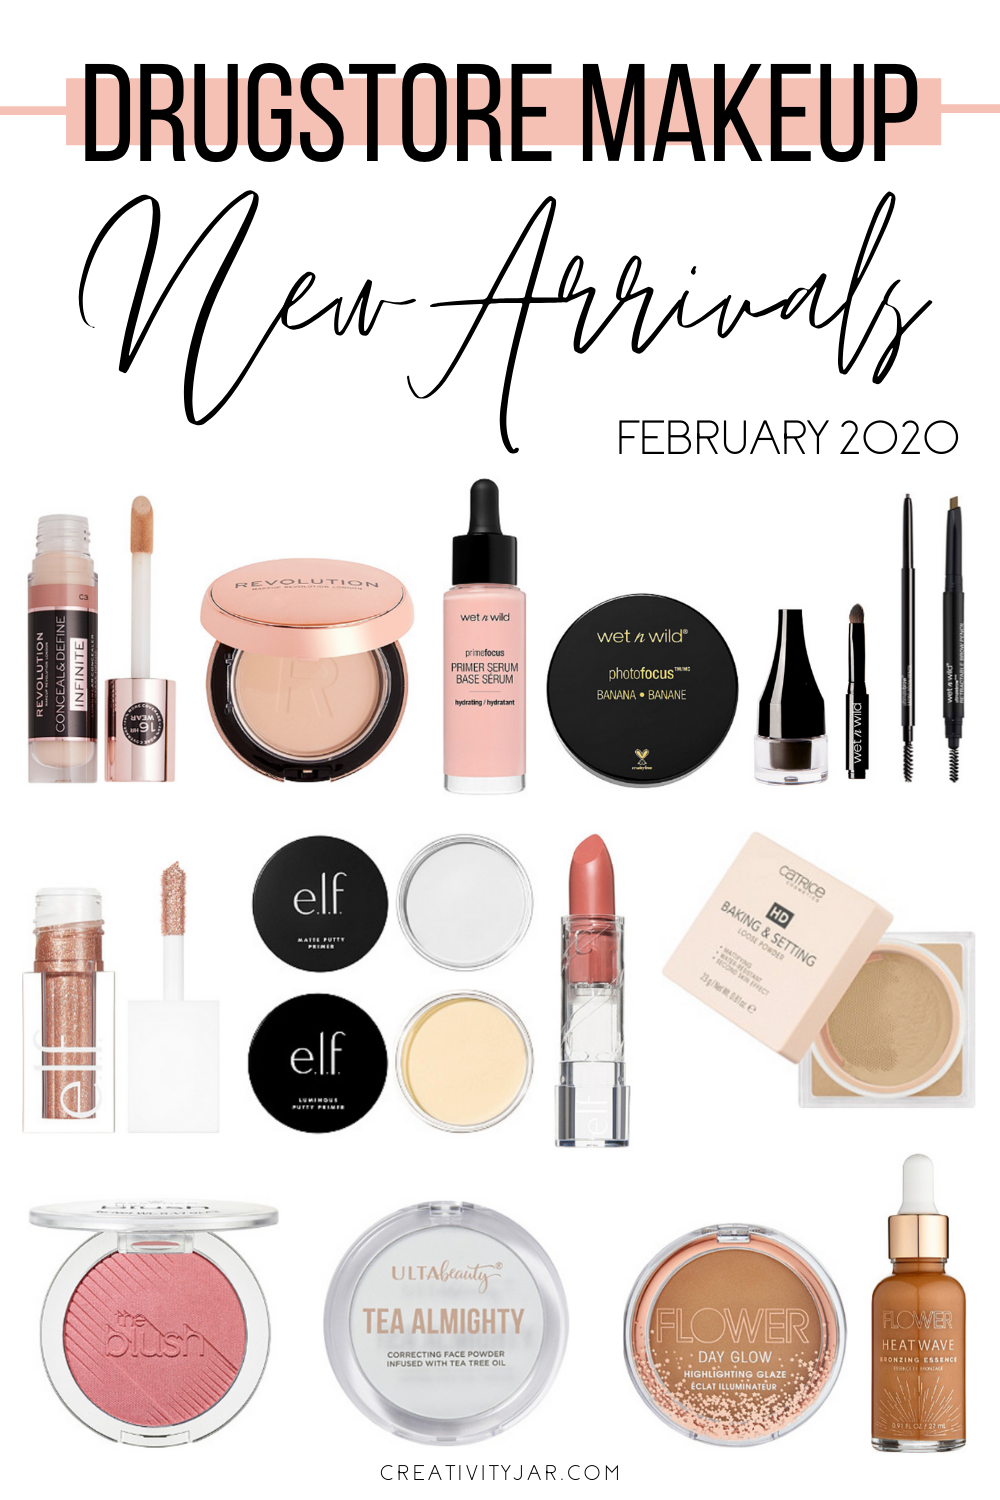 New Drugstore Makeup February 2020 in 2020 Drugstore